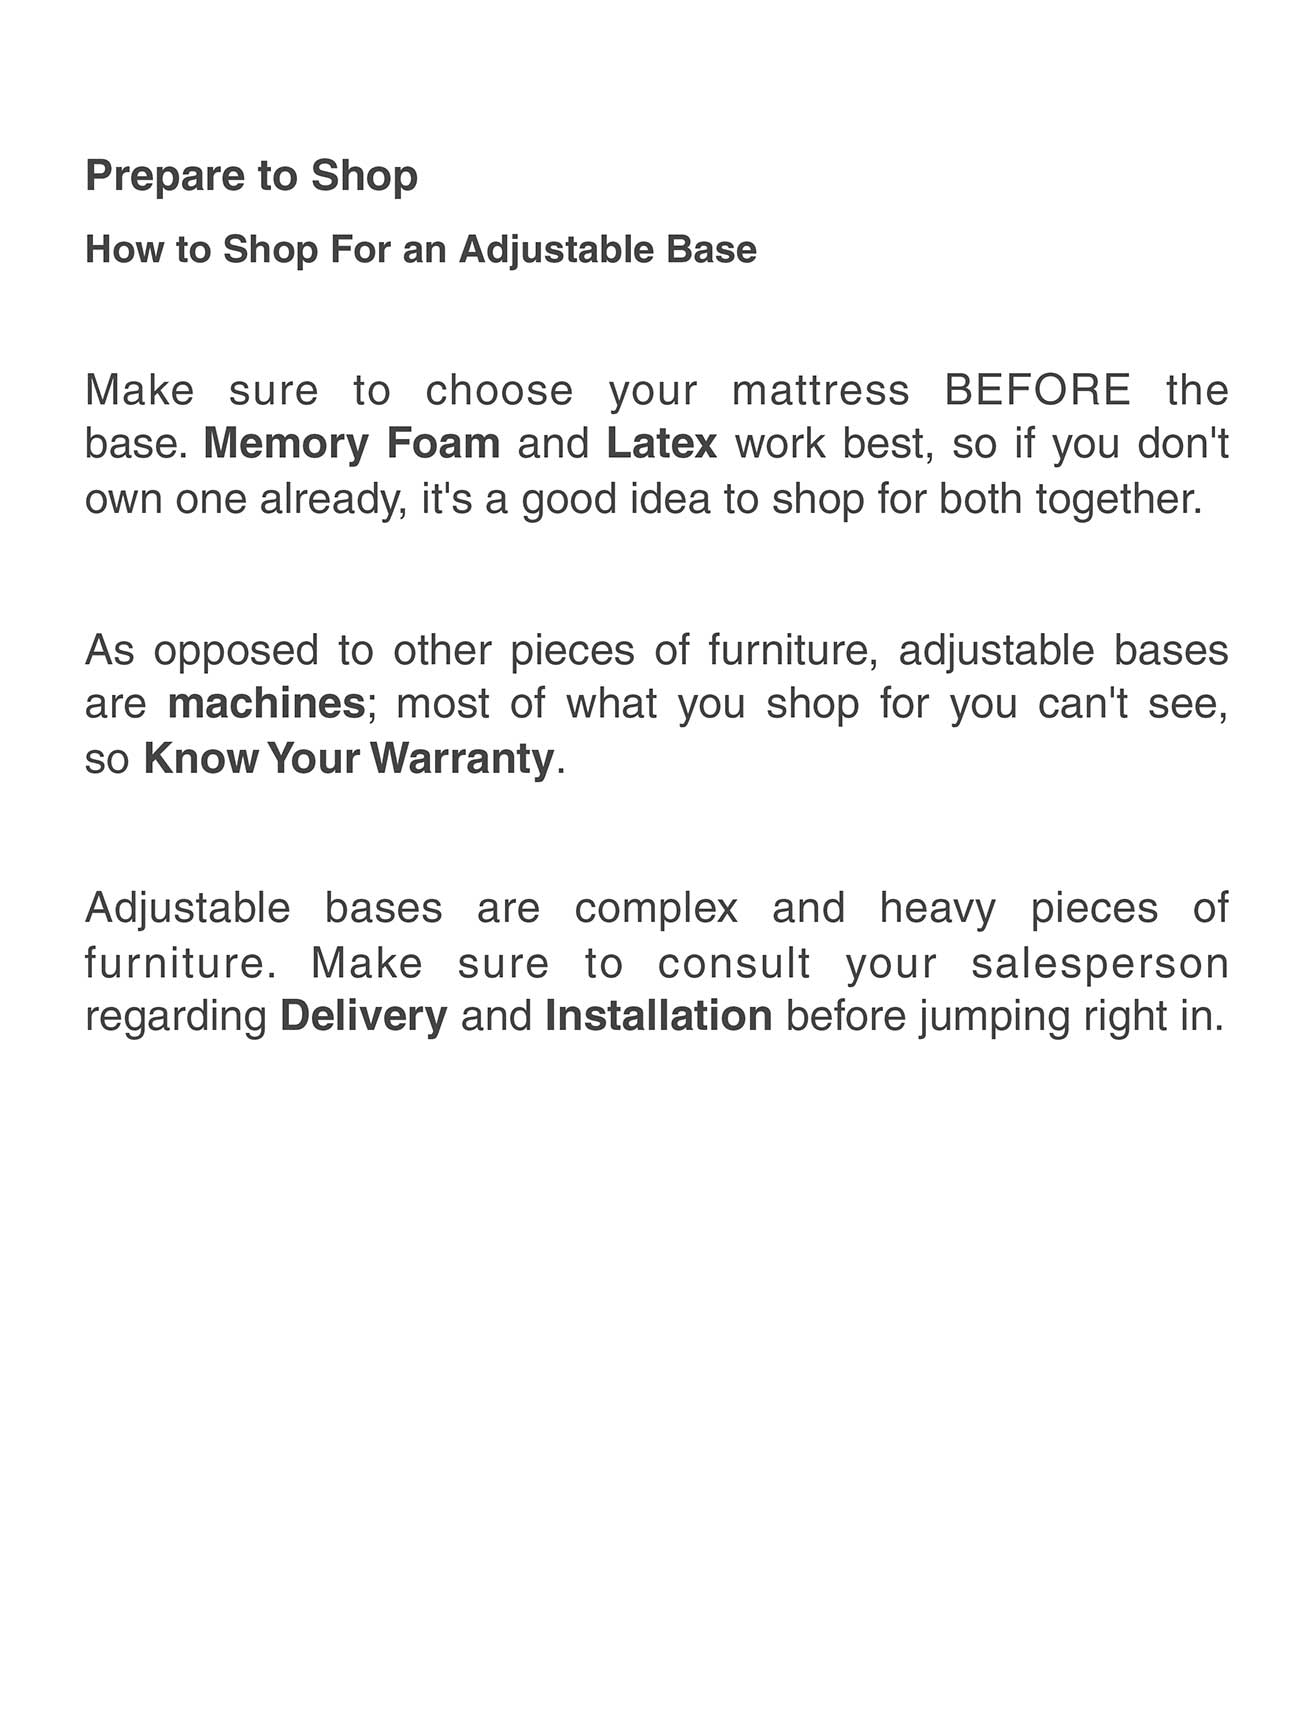 Adjustable Bases Buying Guide